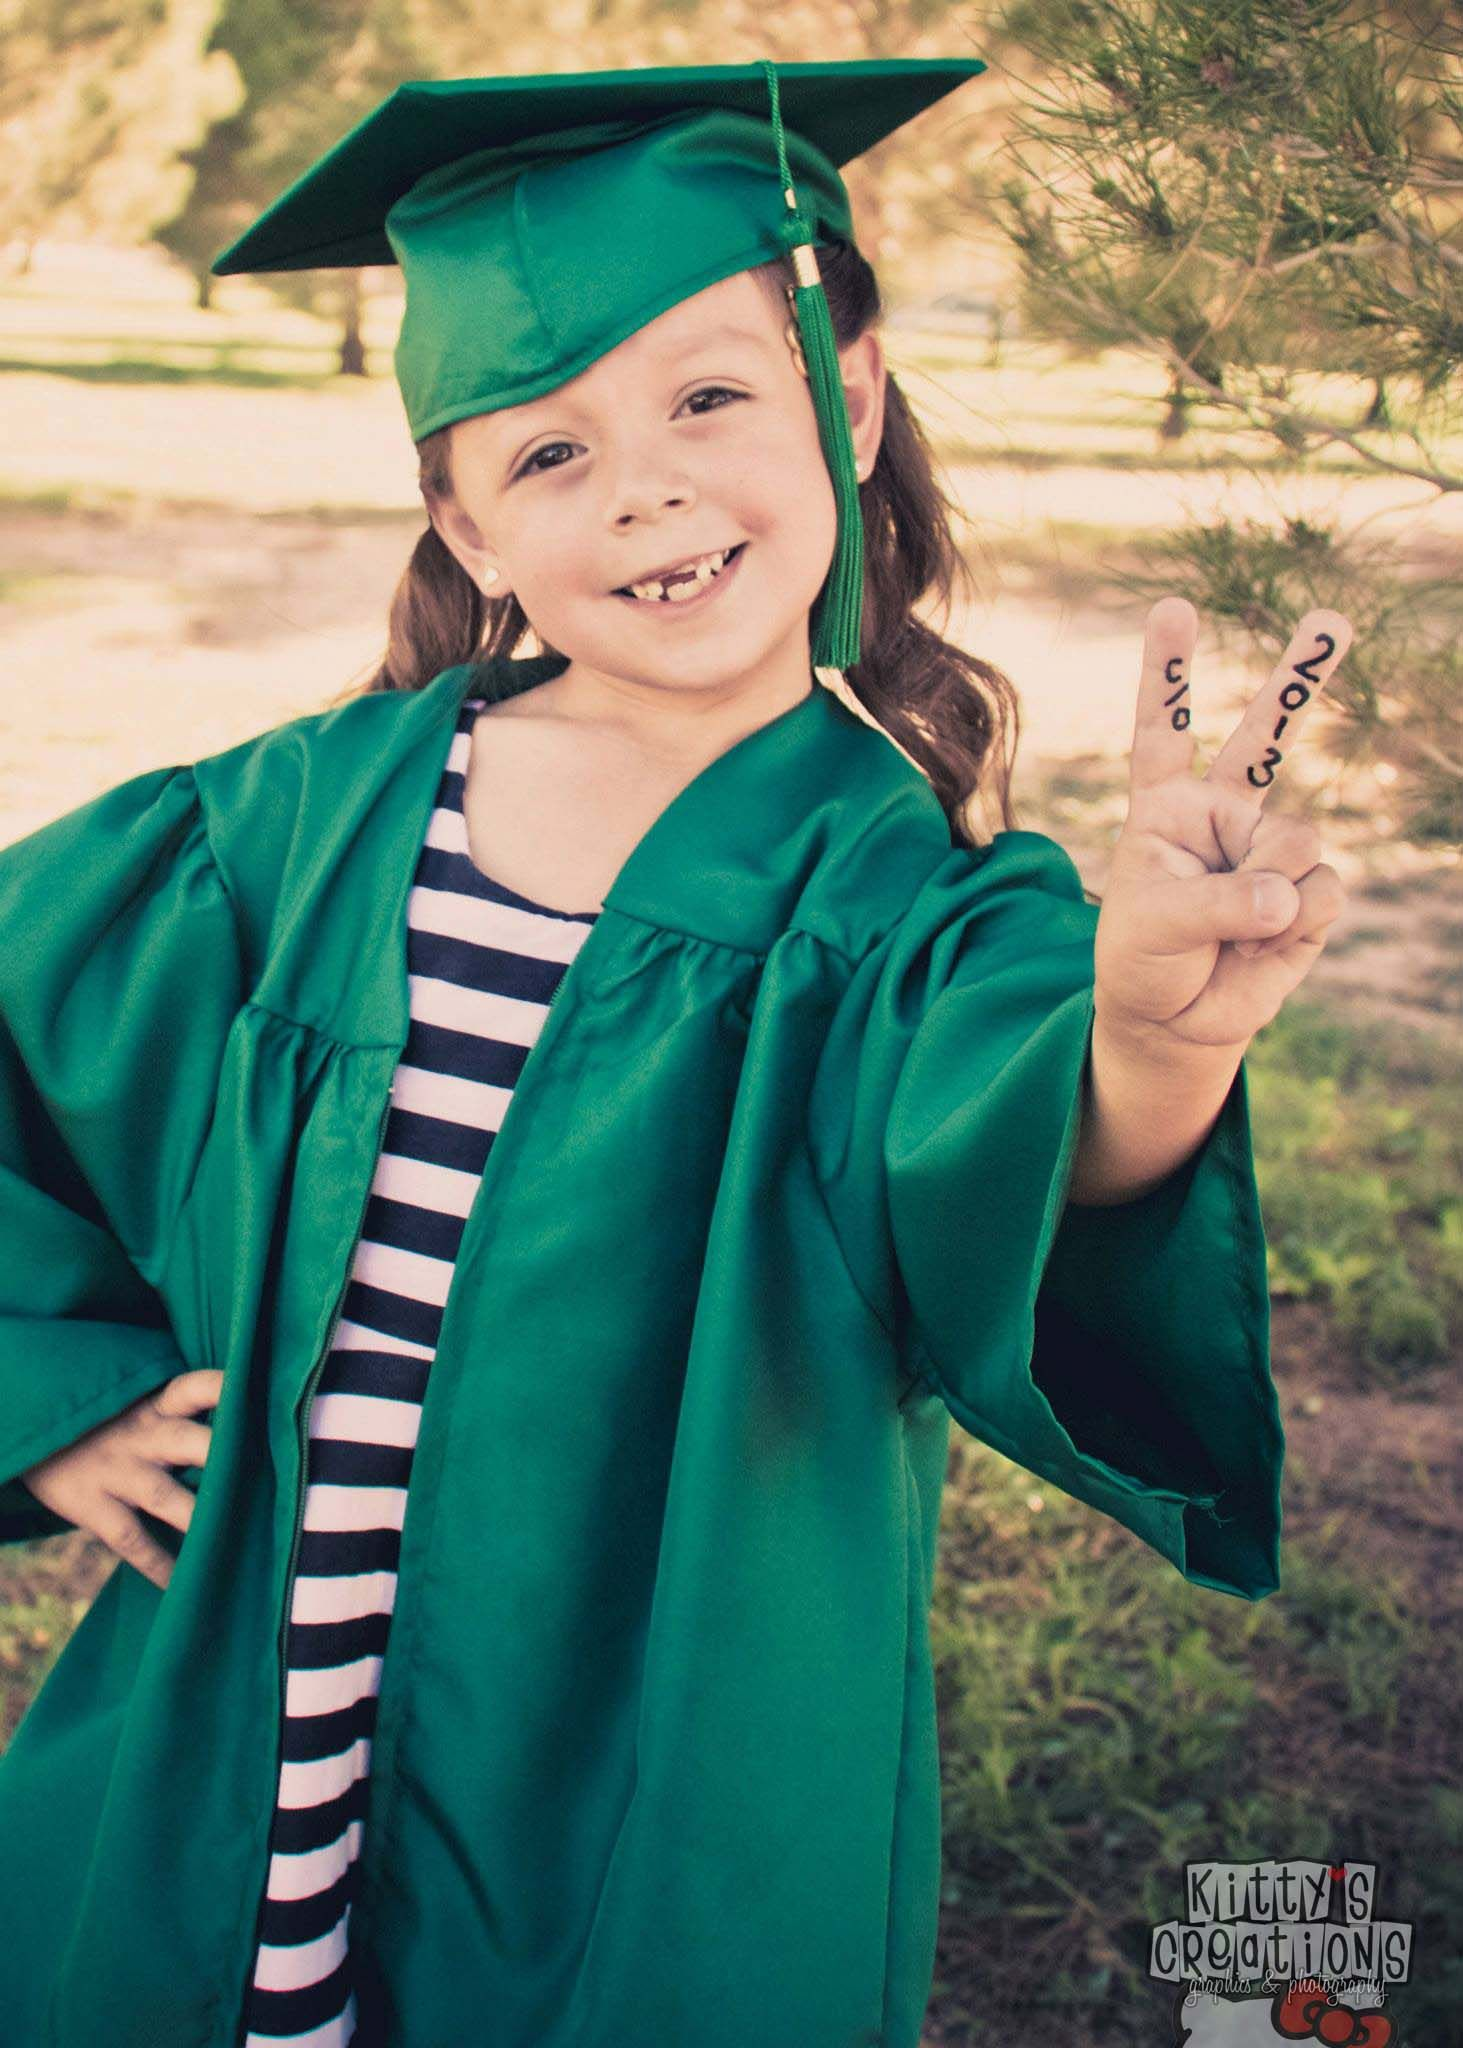 Kindergarten Graduation Dress 2018